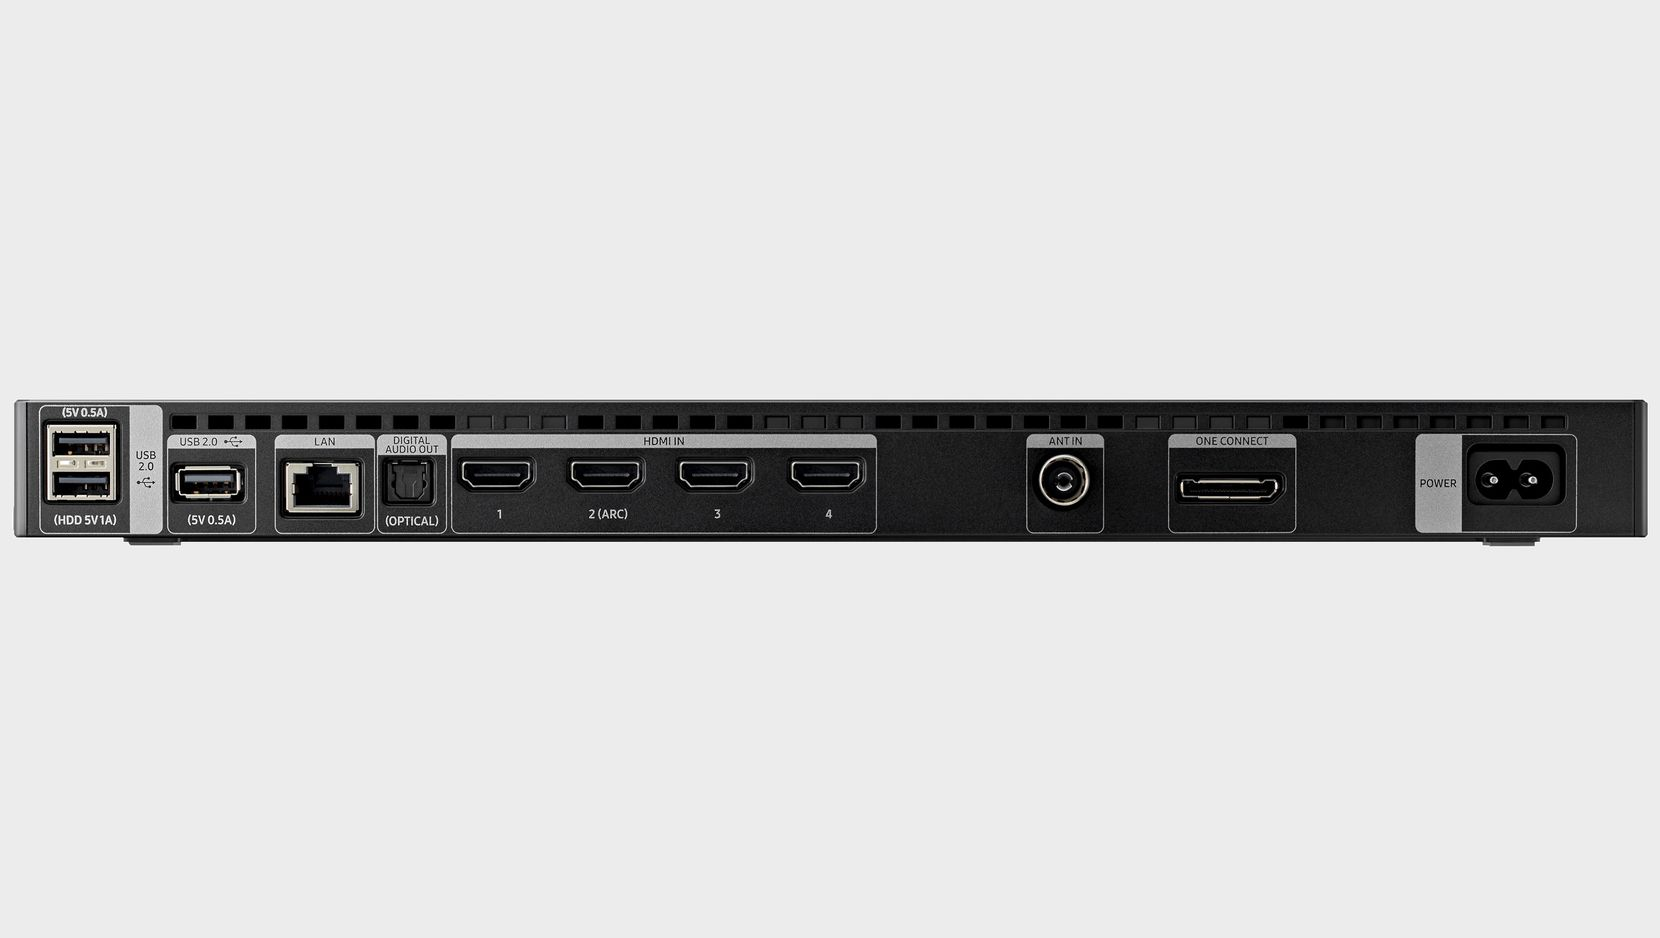 Samsung has moved the ports from the back of the TV to this One Connect box, which can be placed near your TV source boxes.